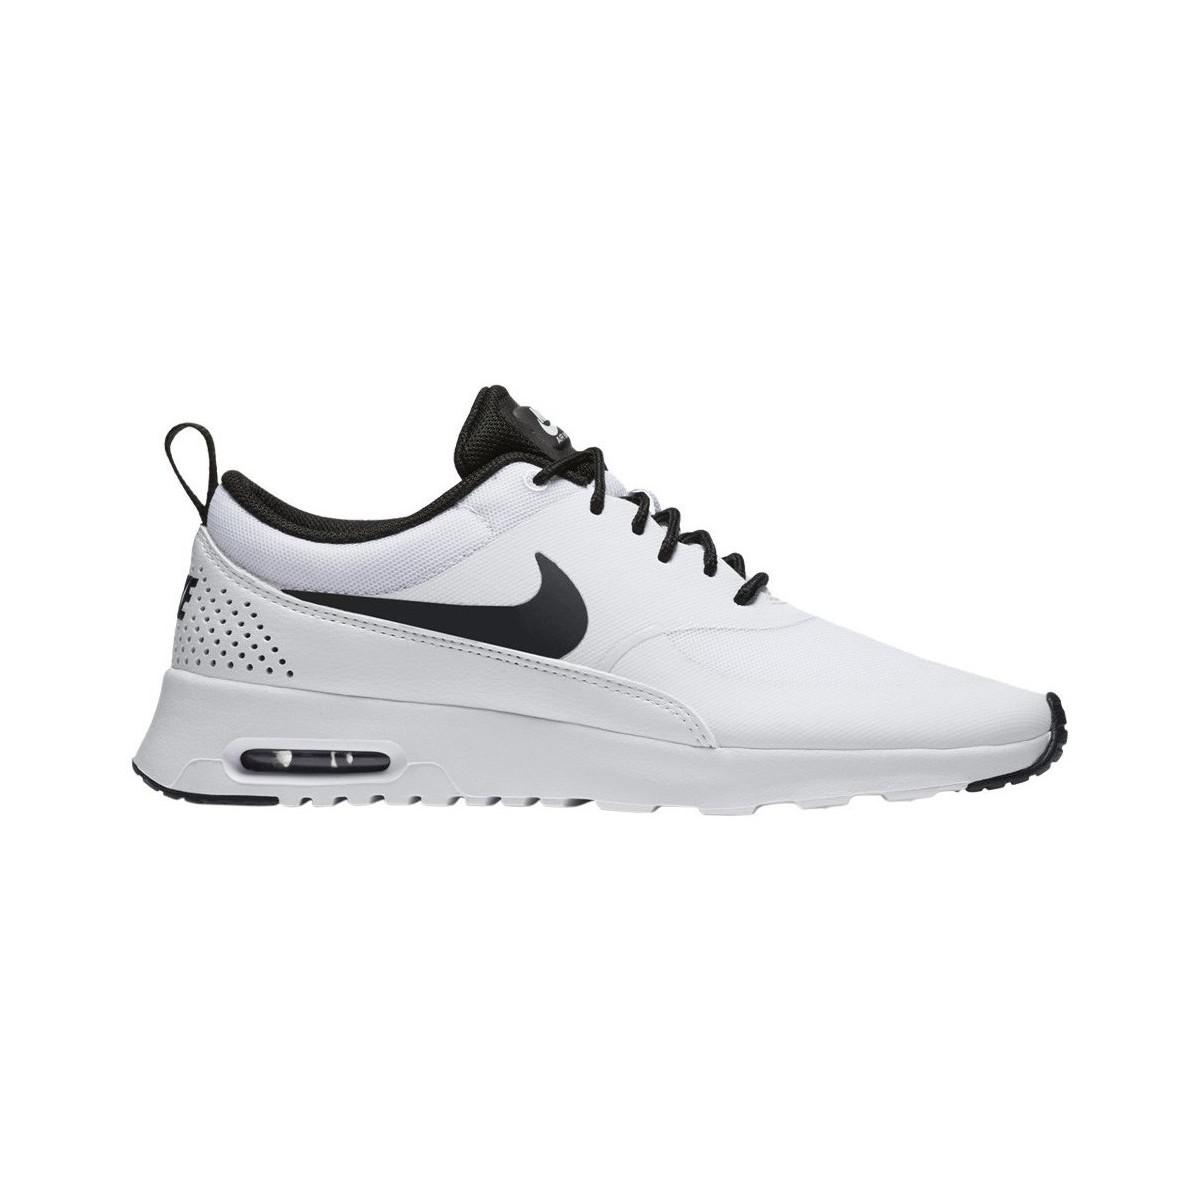 4c1b61b3fe21 Nike Wmns Air Max Thea Women s Shoes (trainers) In White in White - Lyst